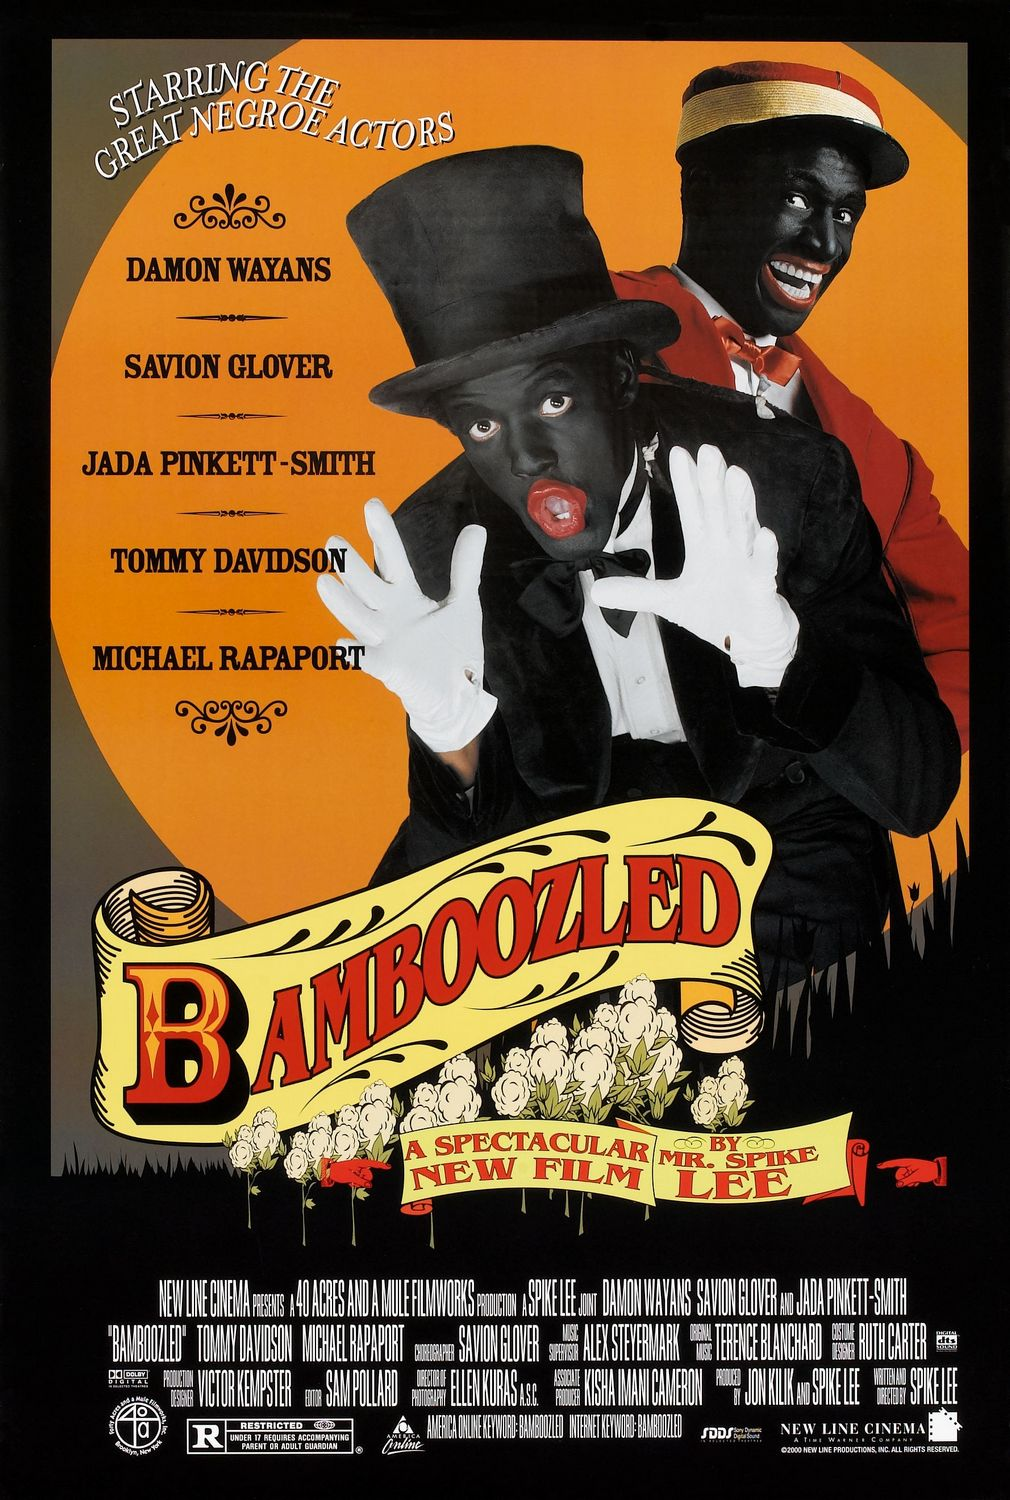 an analysis of the movie bamboozled Since you evoked the context of your first viewing, and since mine bore heavily on my response to the film, i'm reciprocating: i saw bamboozled on the last tr: the person we've not discussed yet in this analysis is manray, also required to do an about-turn from malleable naif to jealous, possessive accuser, which i'm.